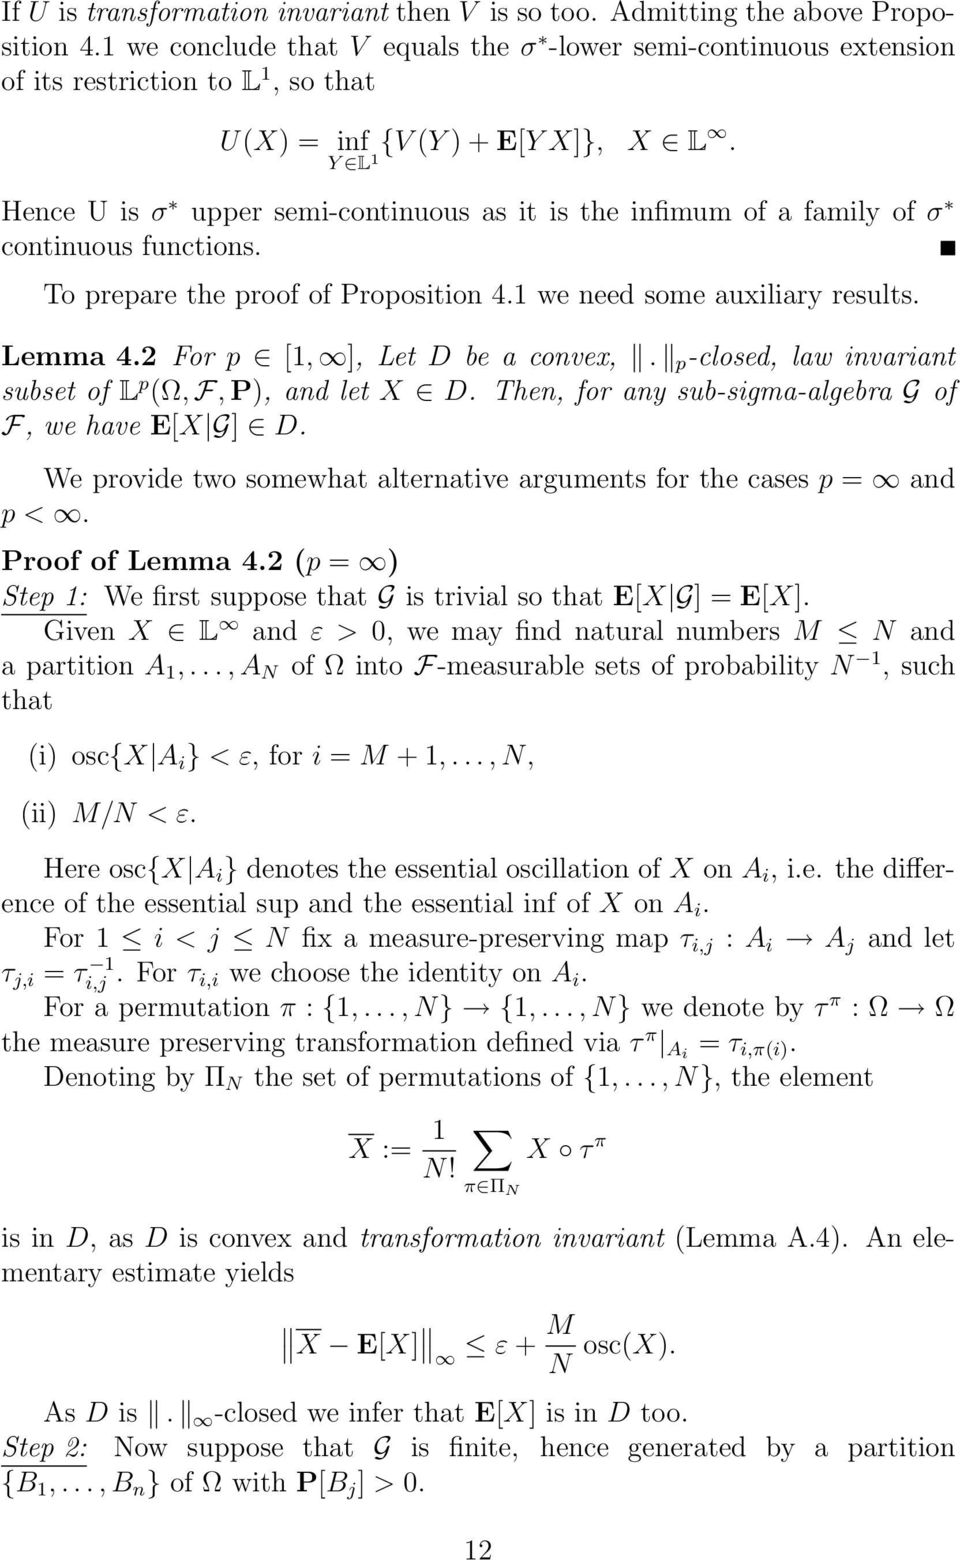 Hence U is σ upper semi-continuous as it is the infimum of a family of σ continuous functions. To prepare the proof of Proposition 4.1 we need some auxiliary results. Lemma 4.